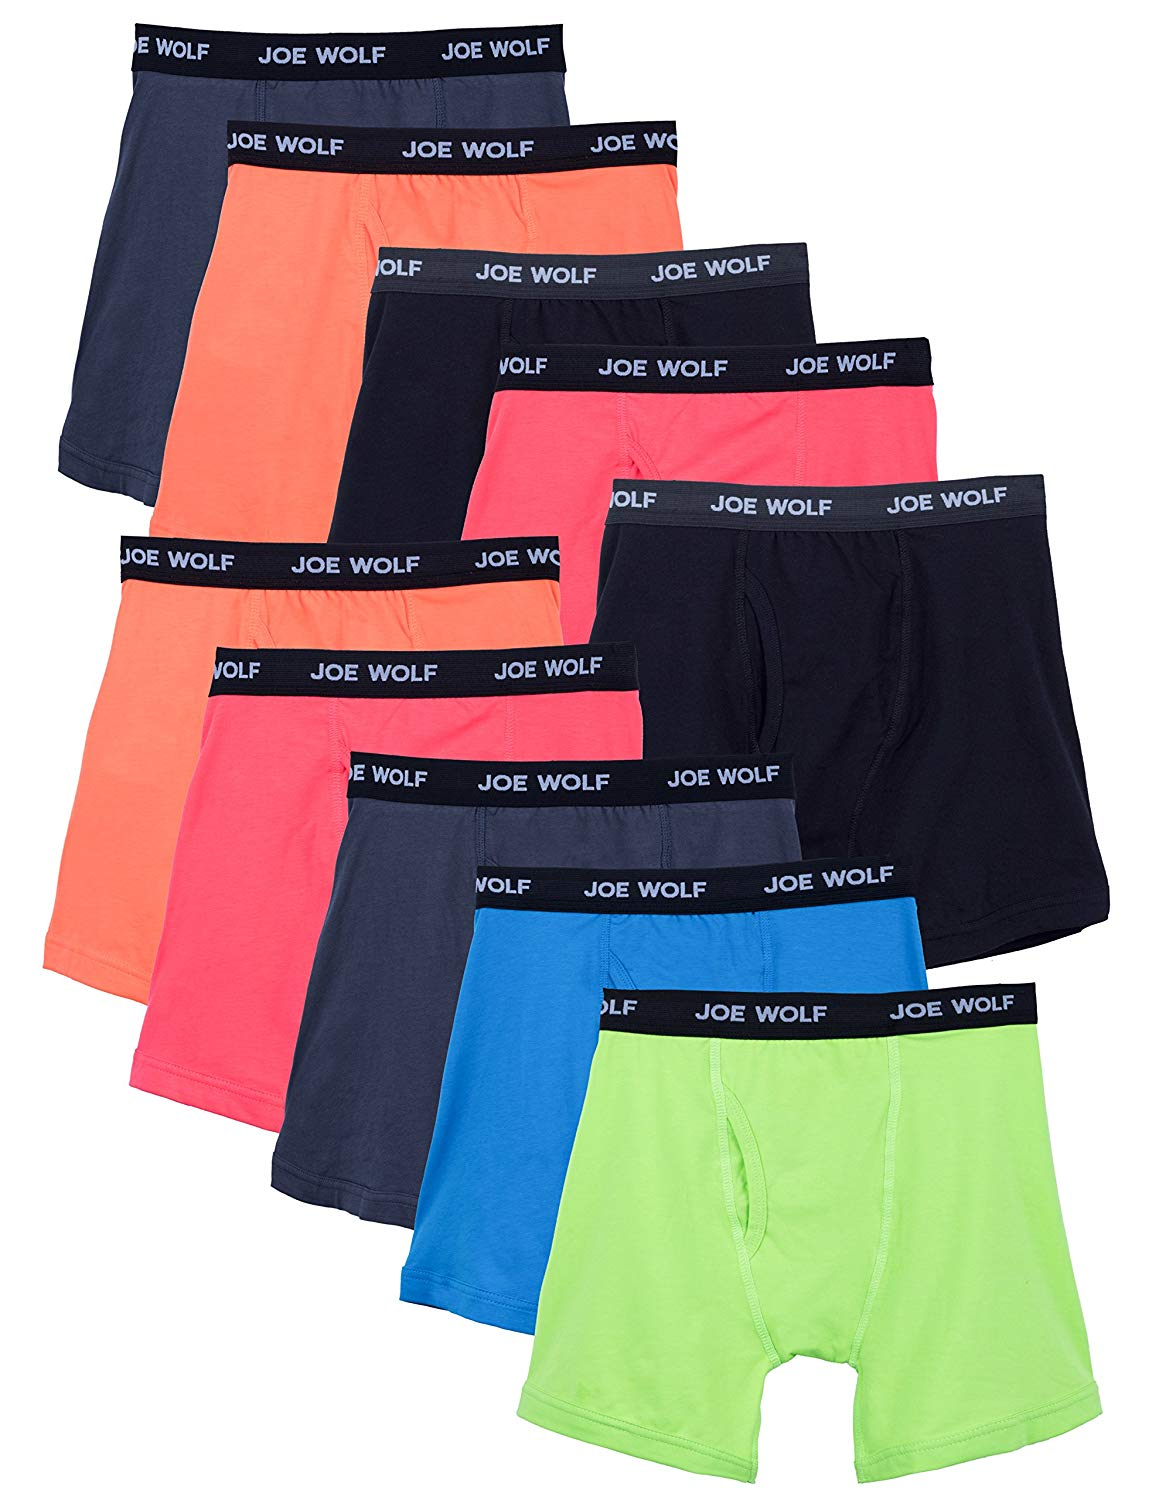 8cbdec3ddb63 Get Quotations · Joe Wolf 10 Pack Men's Cotton Blend Spandex Boxer Briefs  Underwear